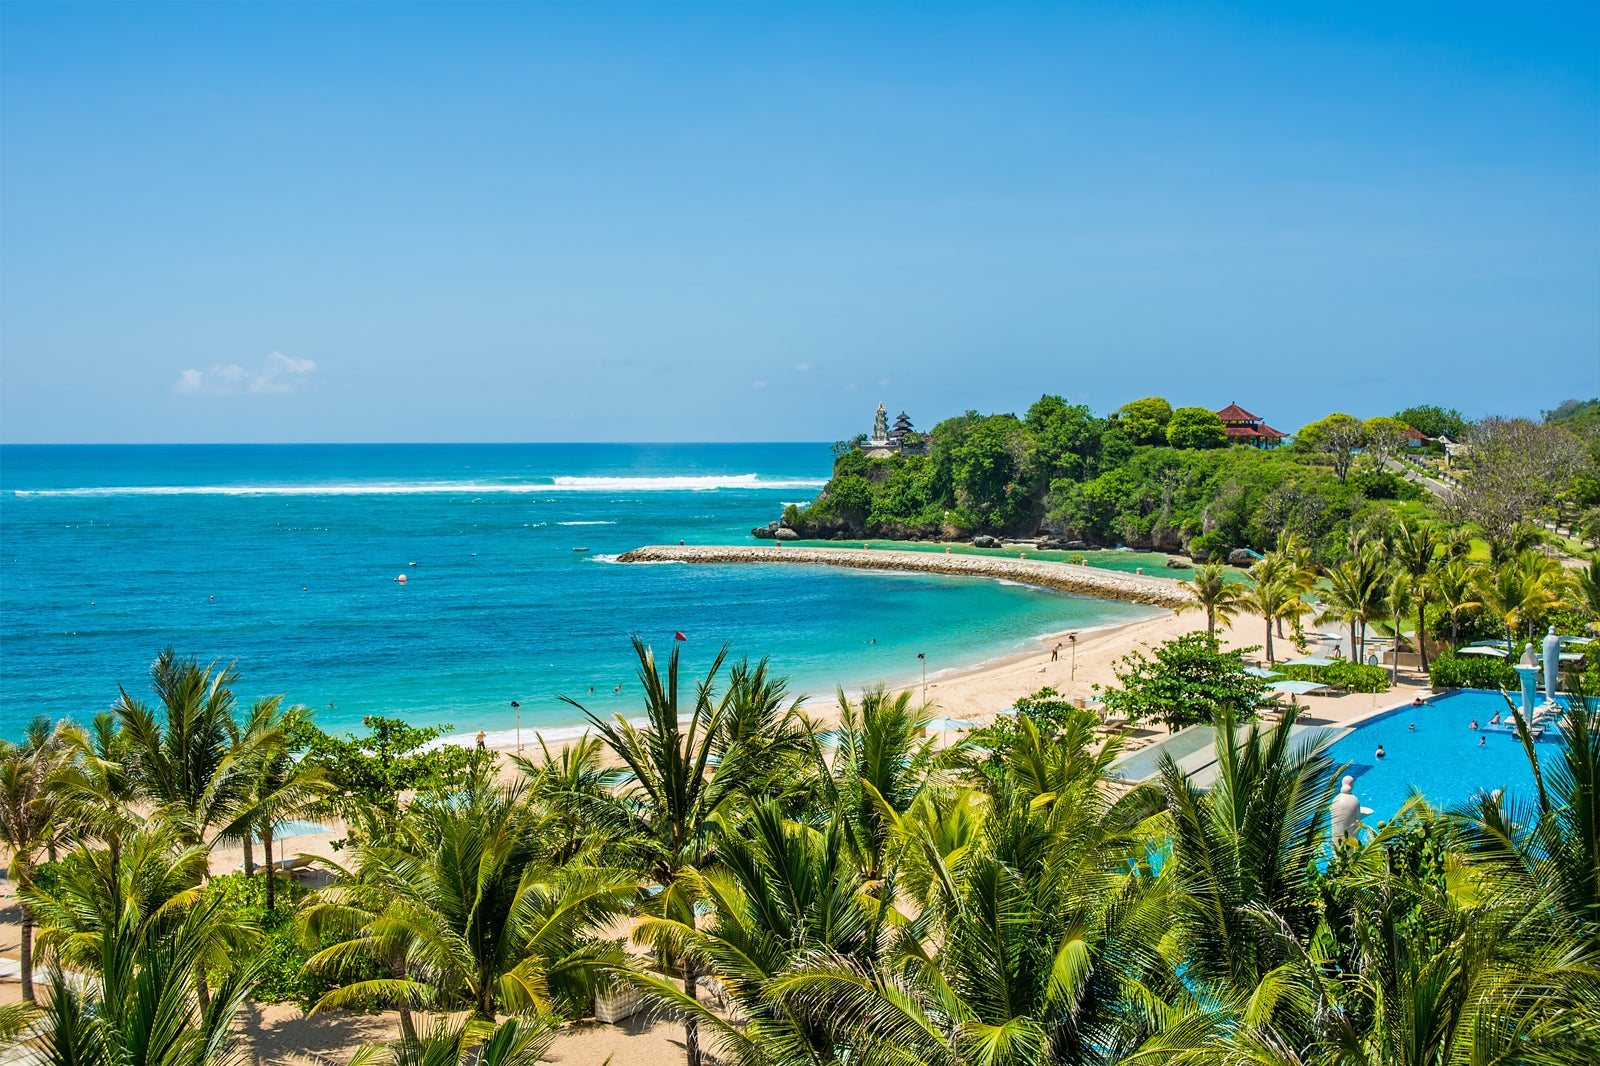 5 Best Snorkeling Beaches In Bali Bali S Best Sites For